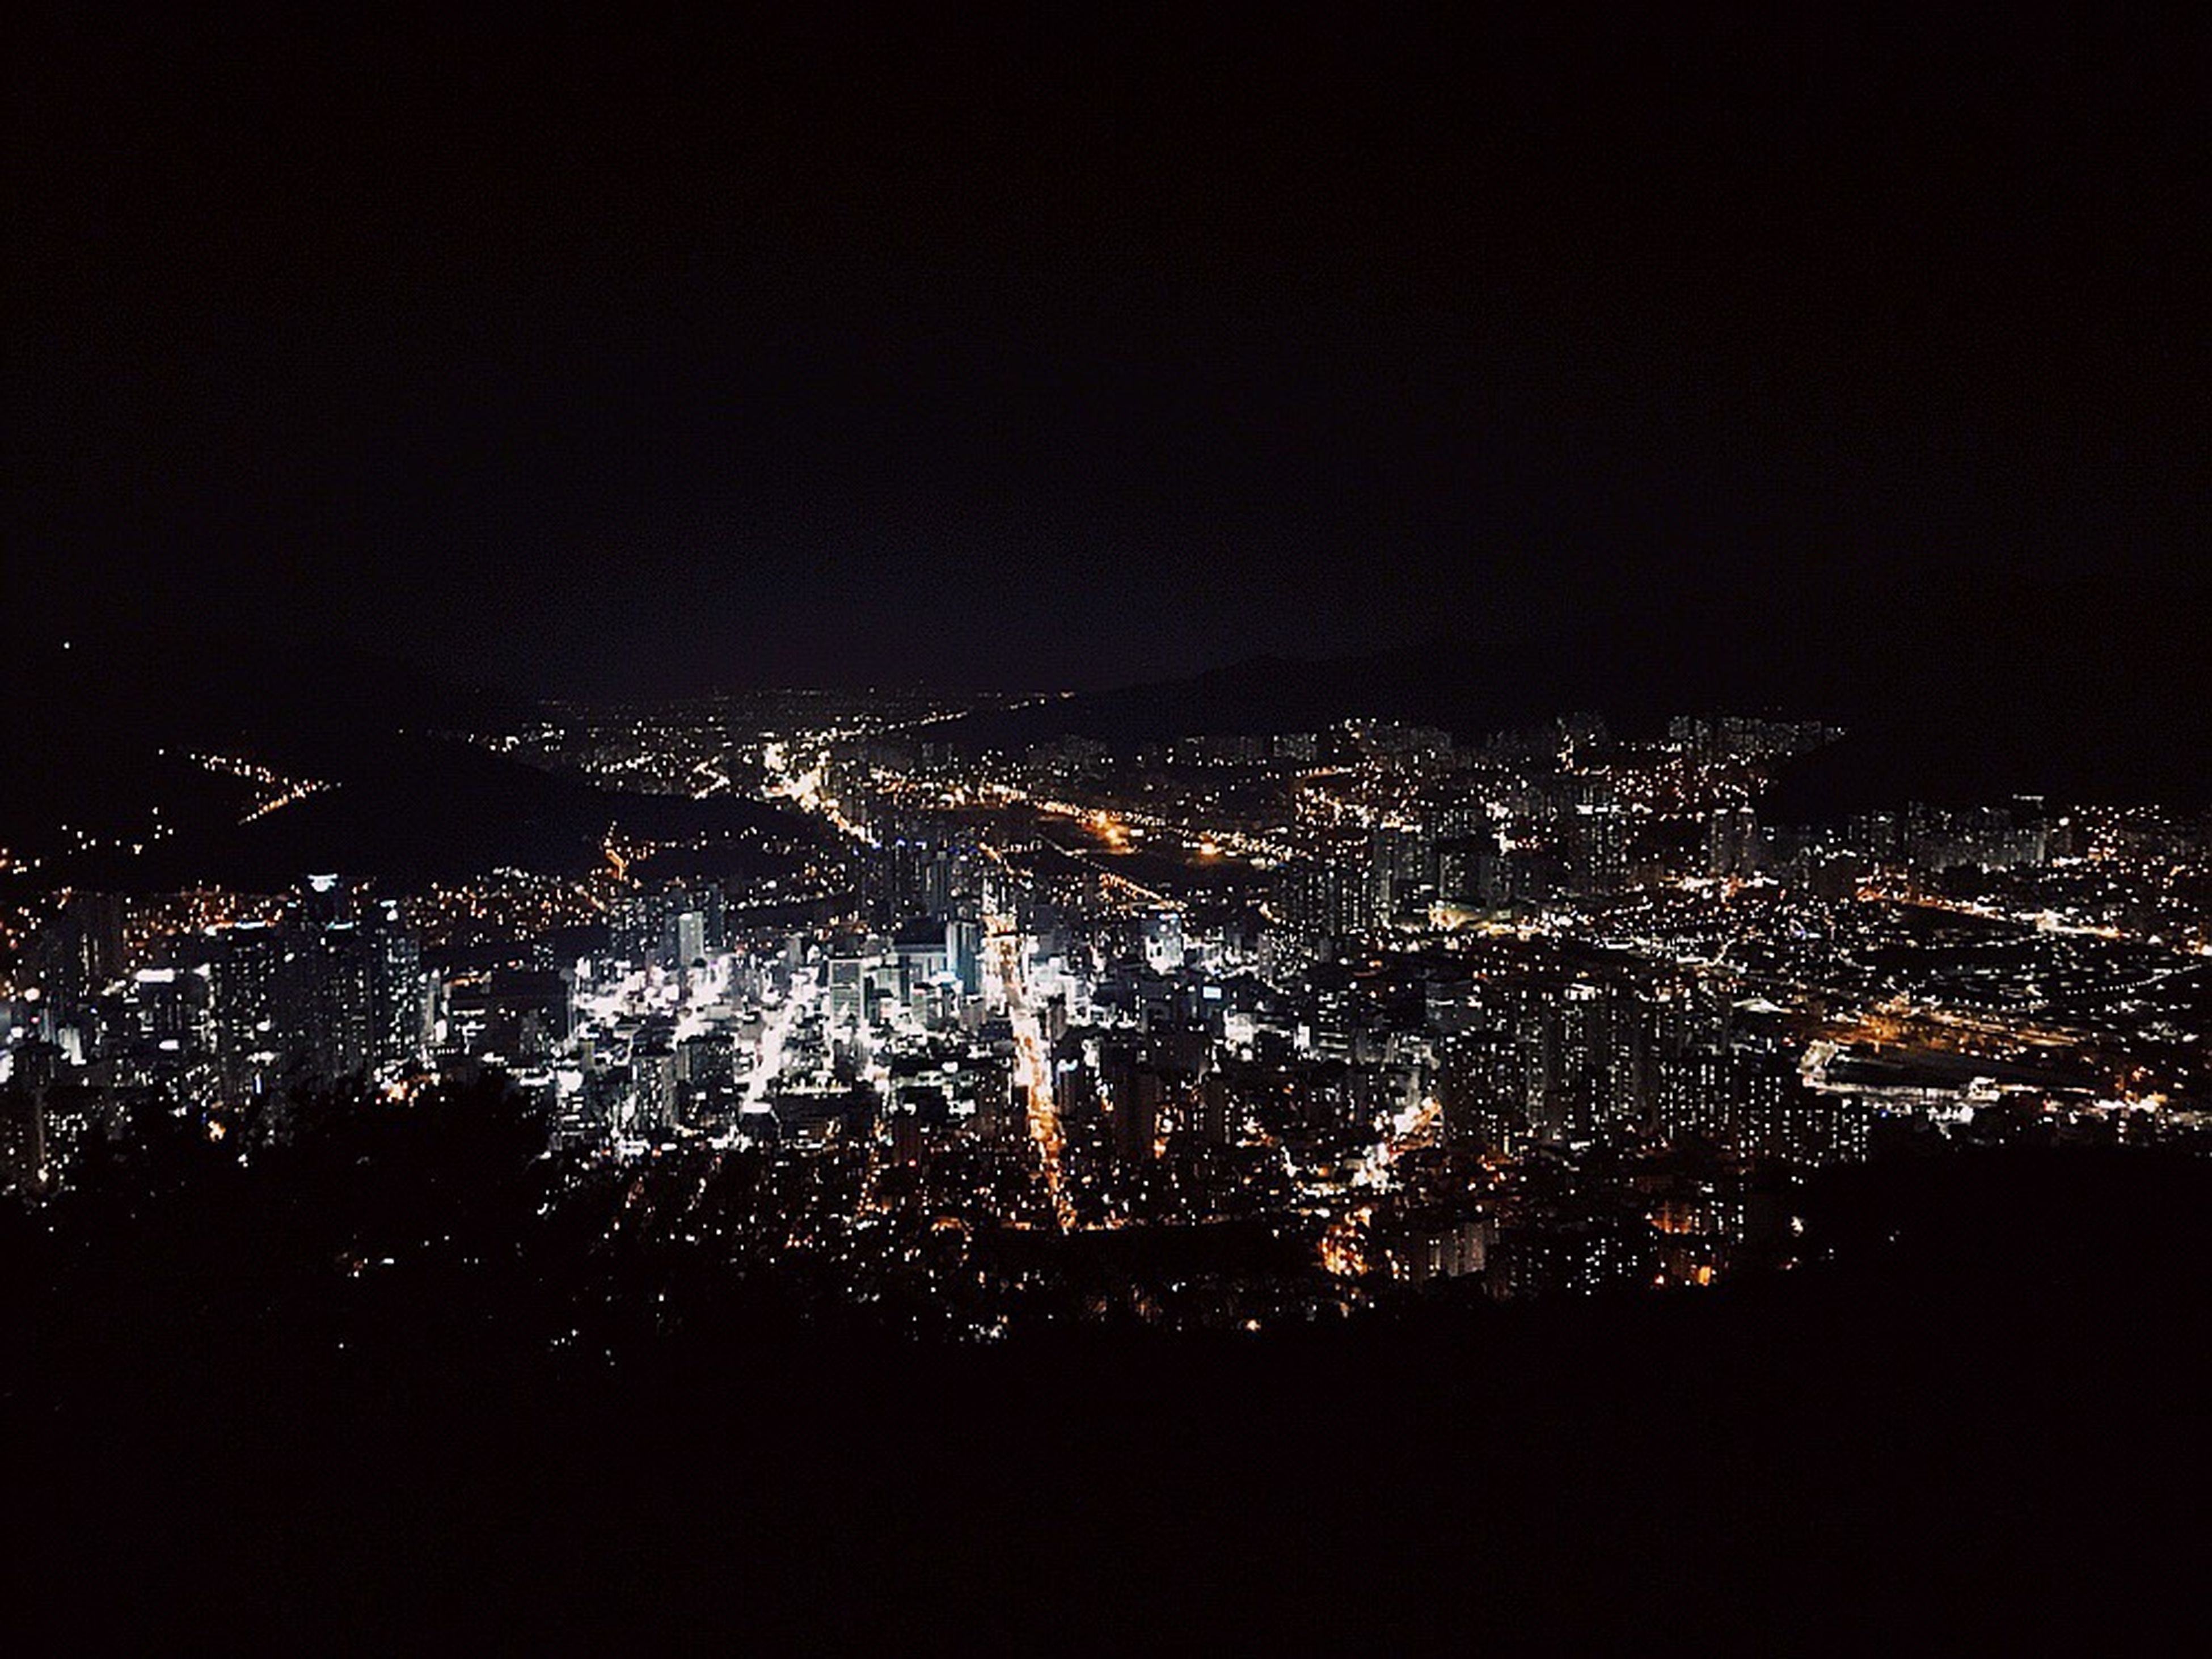 illuminated, night, cityscape, city, crowded, building exterior, architecture, built structure, high angle view, aerial view, copy space, residential district, dark, sky, city life, skyscraper, clear sky, residential building, no people, residential structure